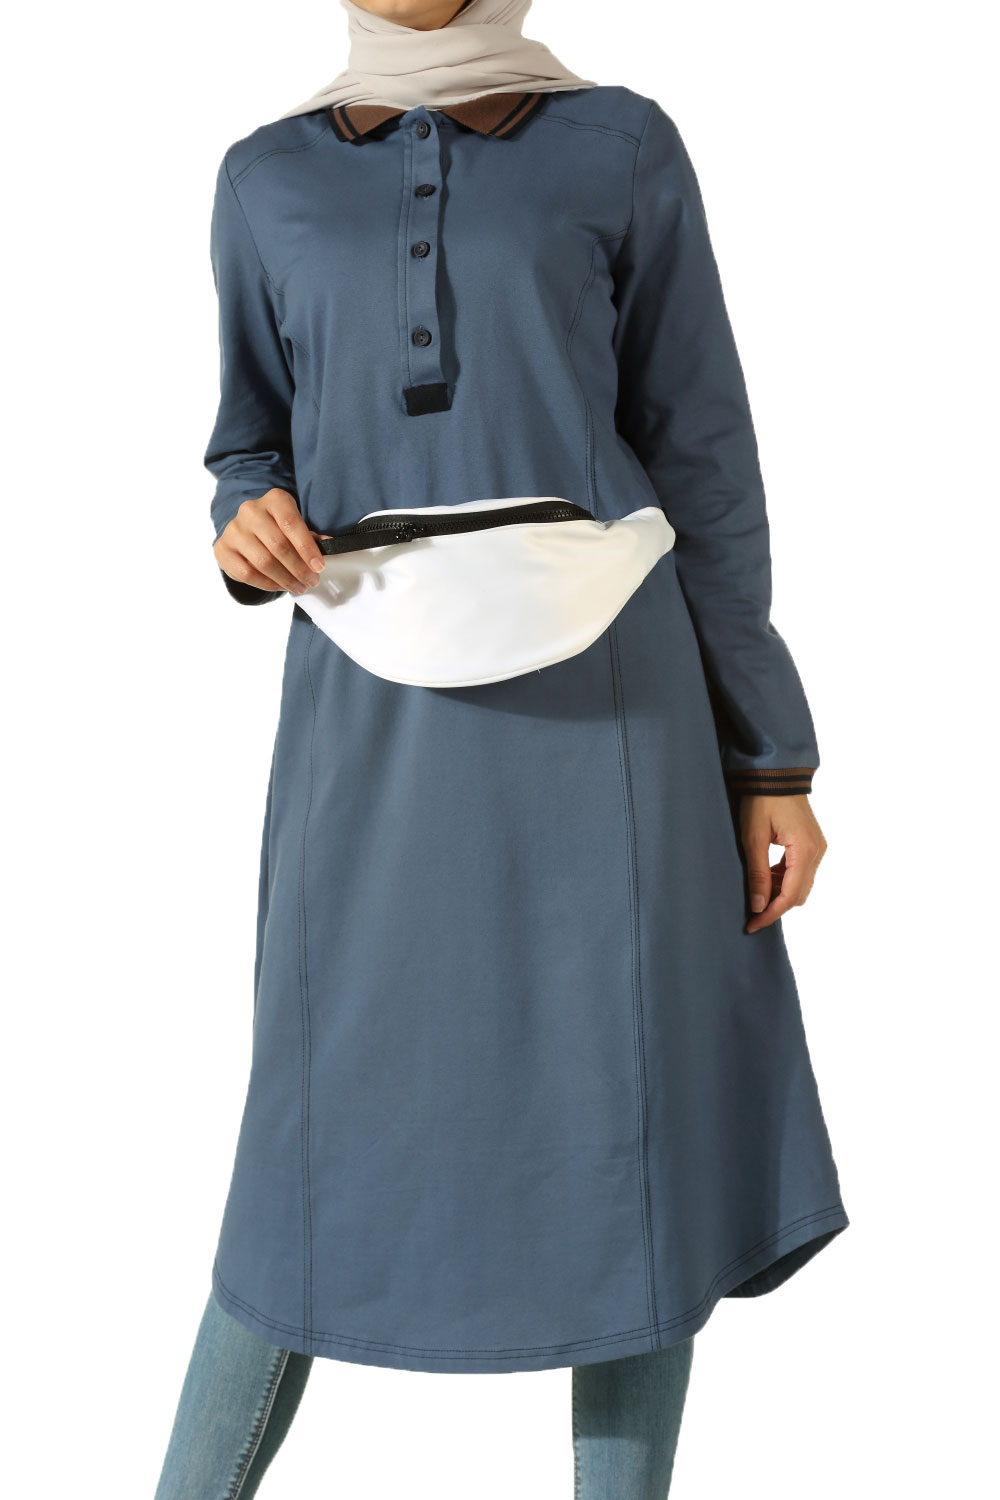 LACOSTE TUNIC WITH SEVERAL EMBROIDERED RIBANAL